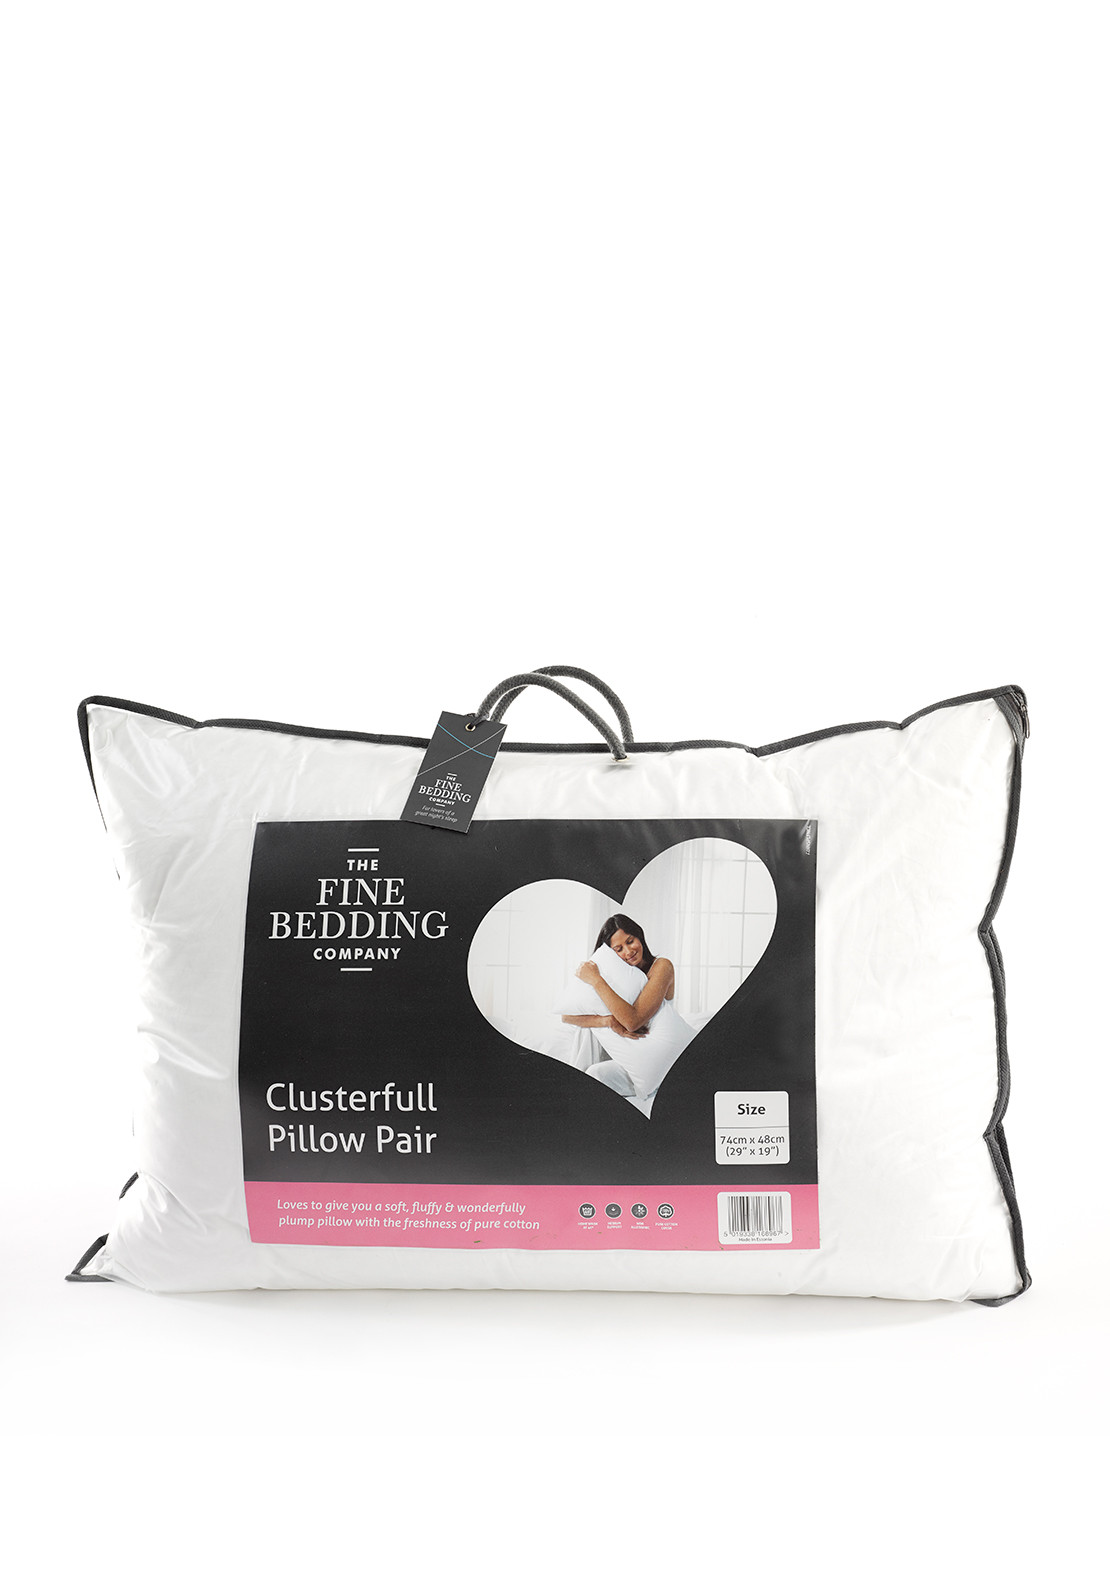 The Fine Bedding Company Clusterfull Pillow Pair